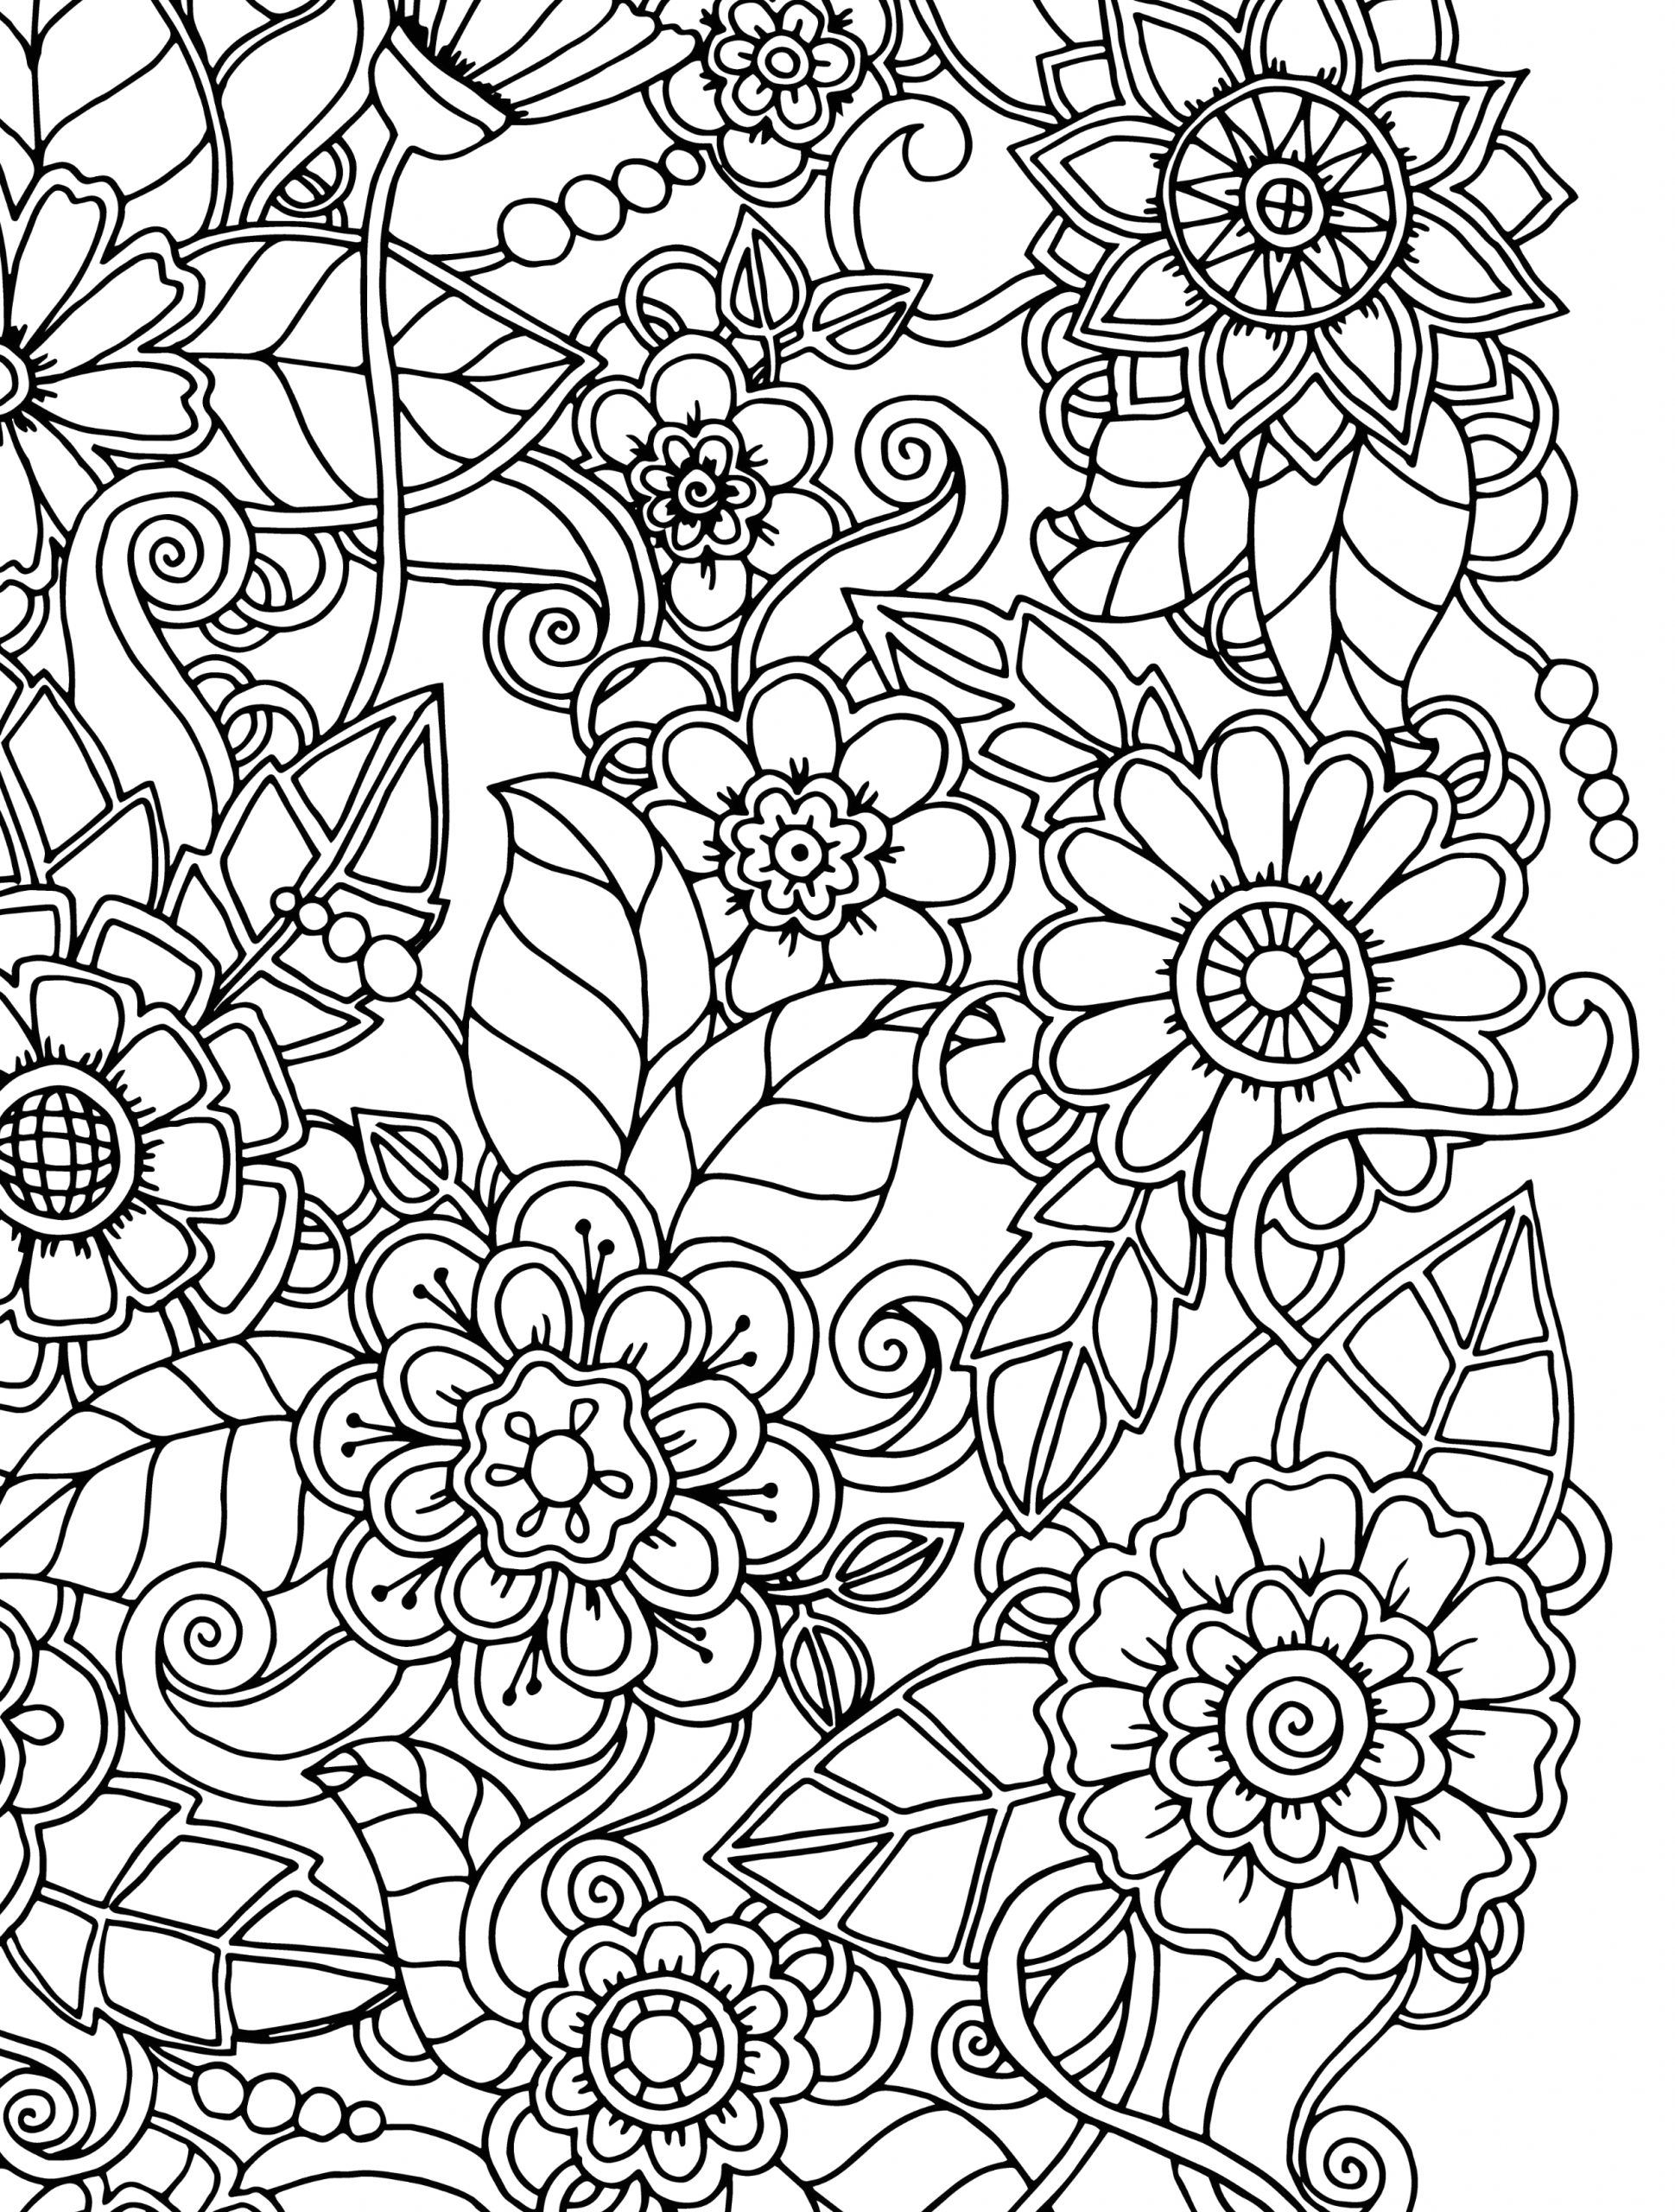 Printable Coloring Pages for Adults with Dementia Coloring Pages for Dementia Patients Download